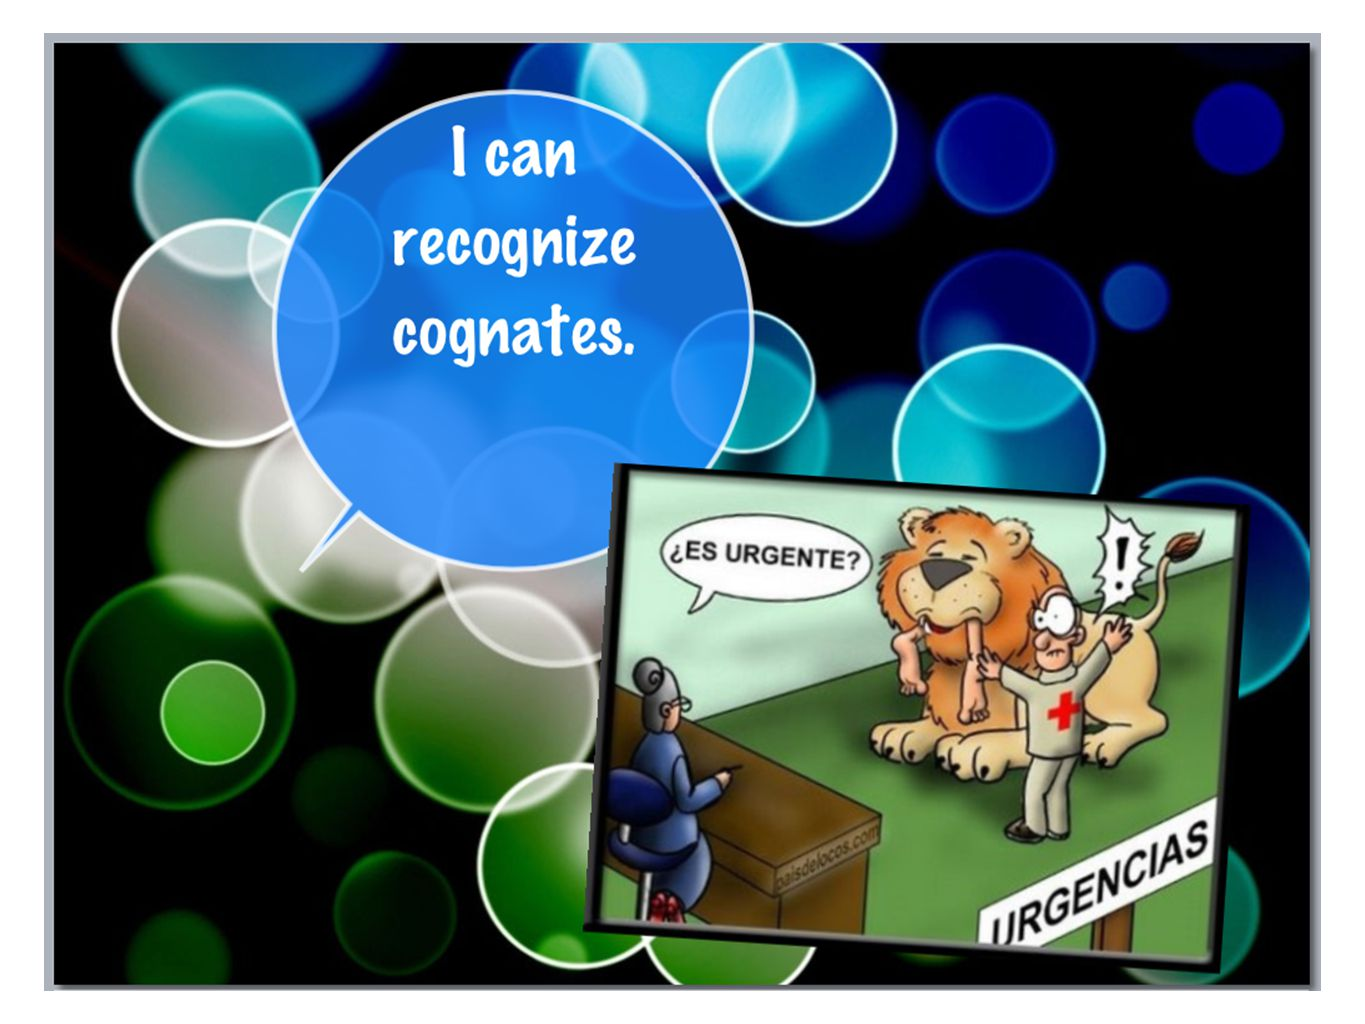 Teacher instructions 1.) Go over the first 2 slides that explain what a cognate is and show examples.